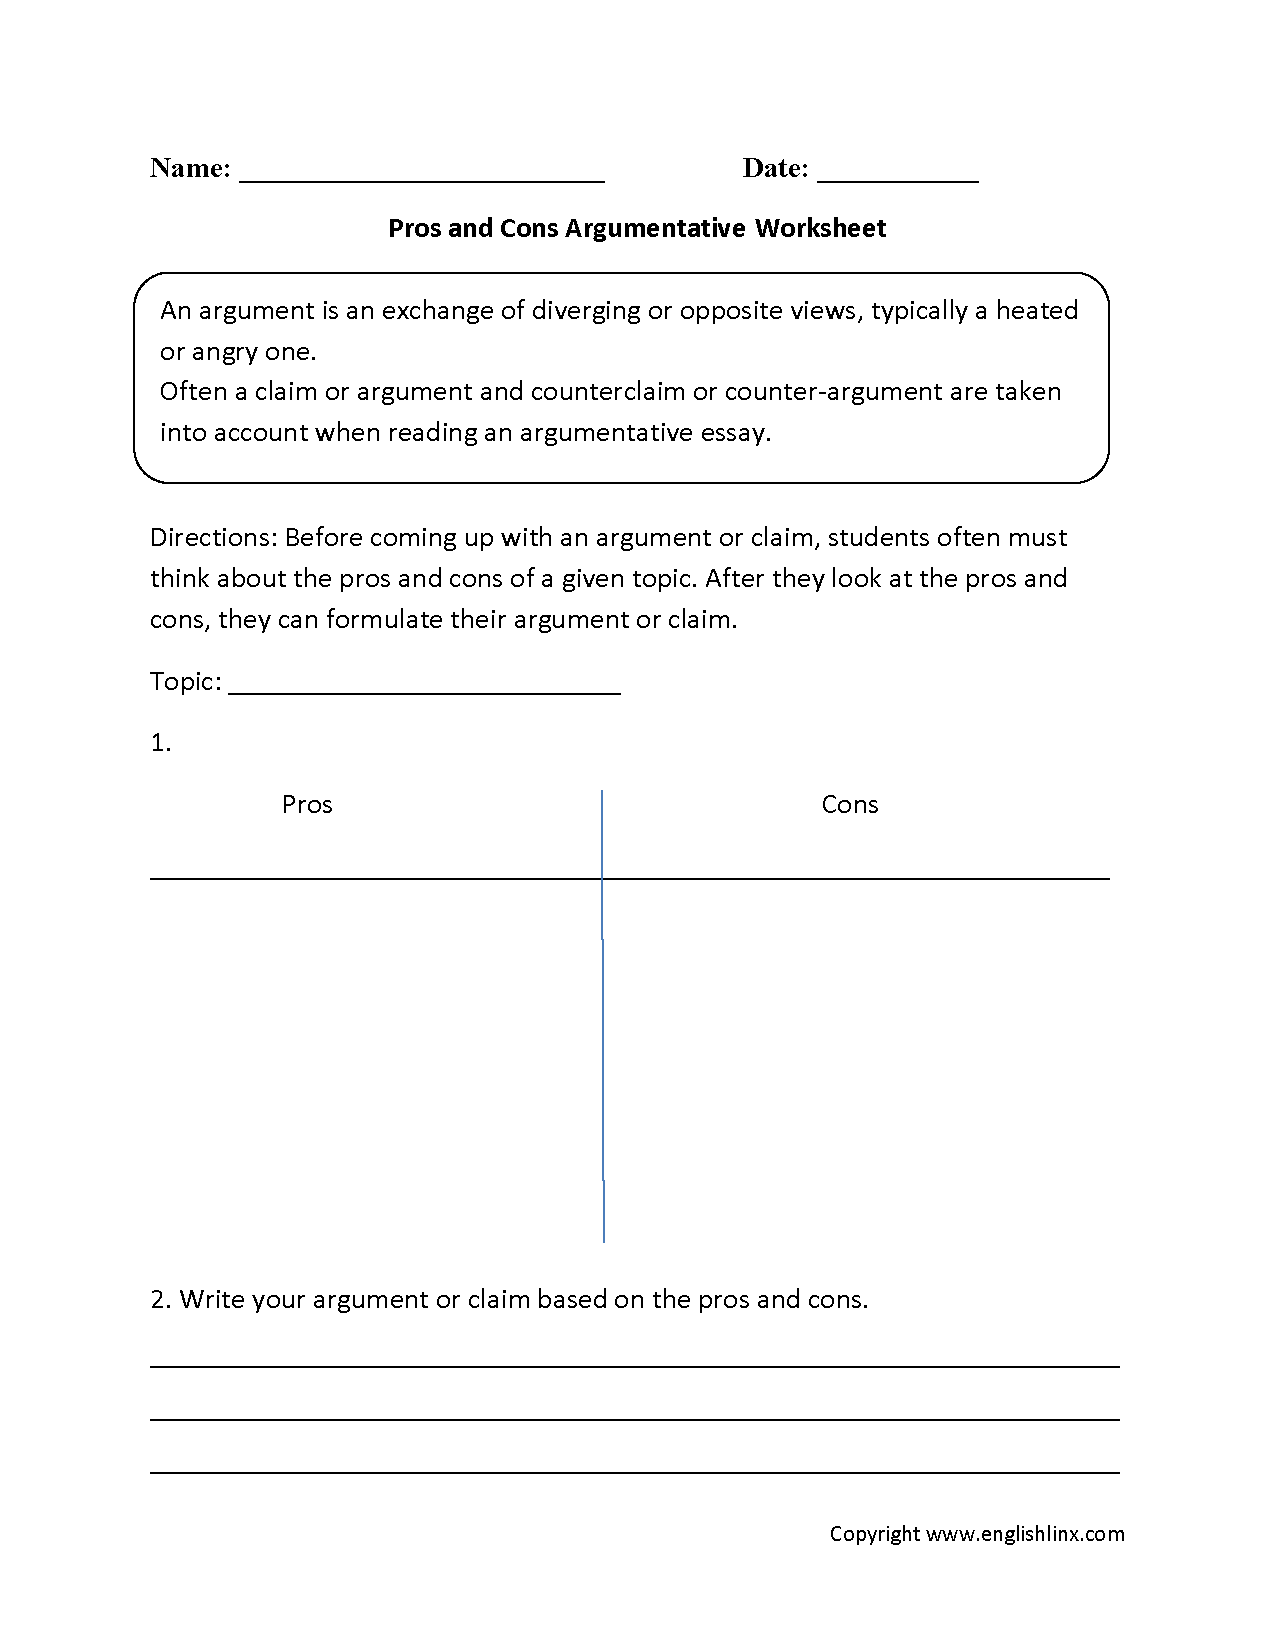 reading worksheets argumentative worksheets argumentative worksheets